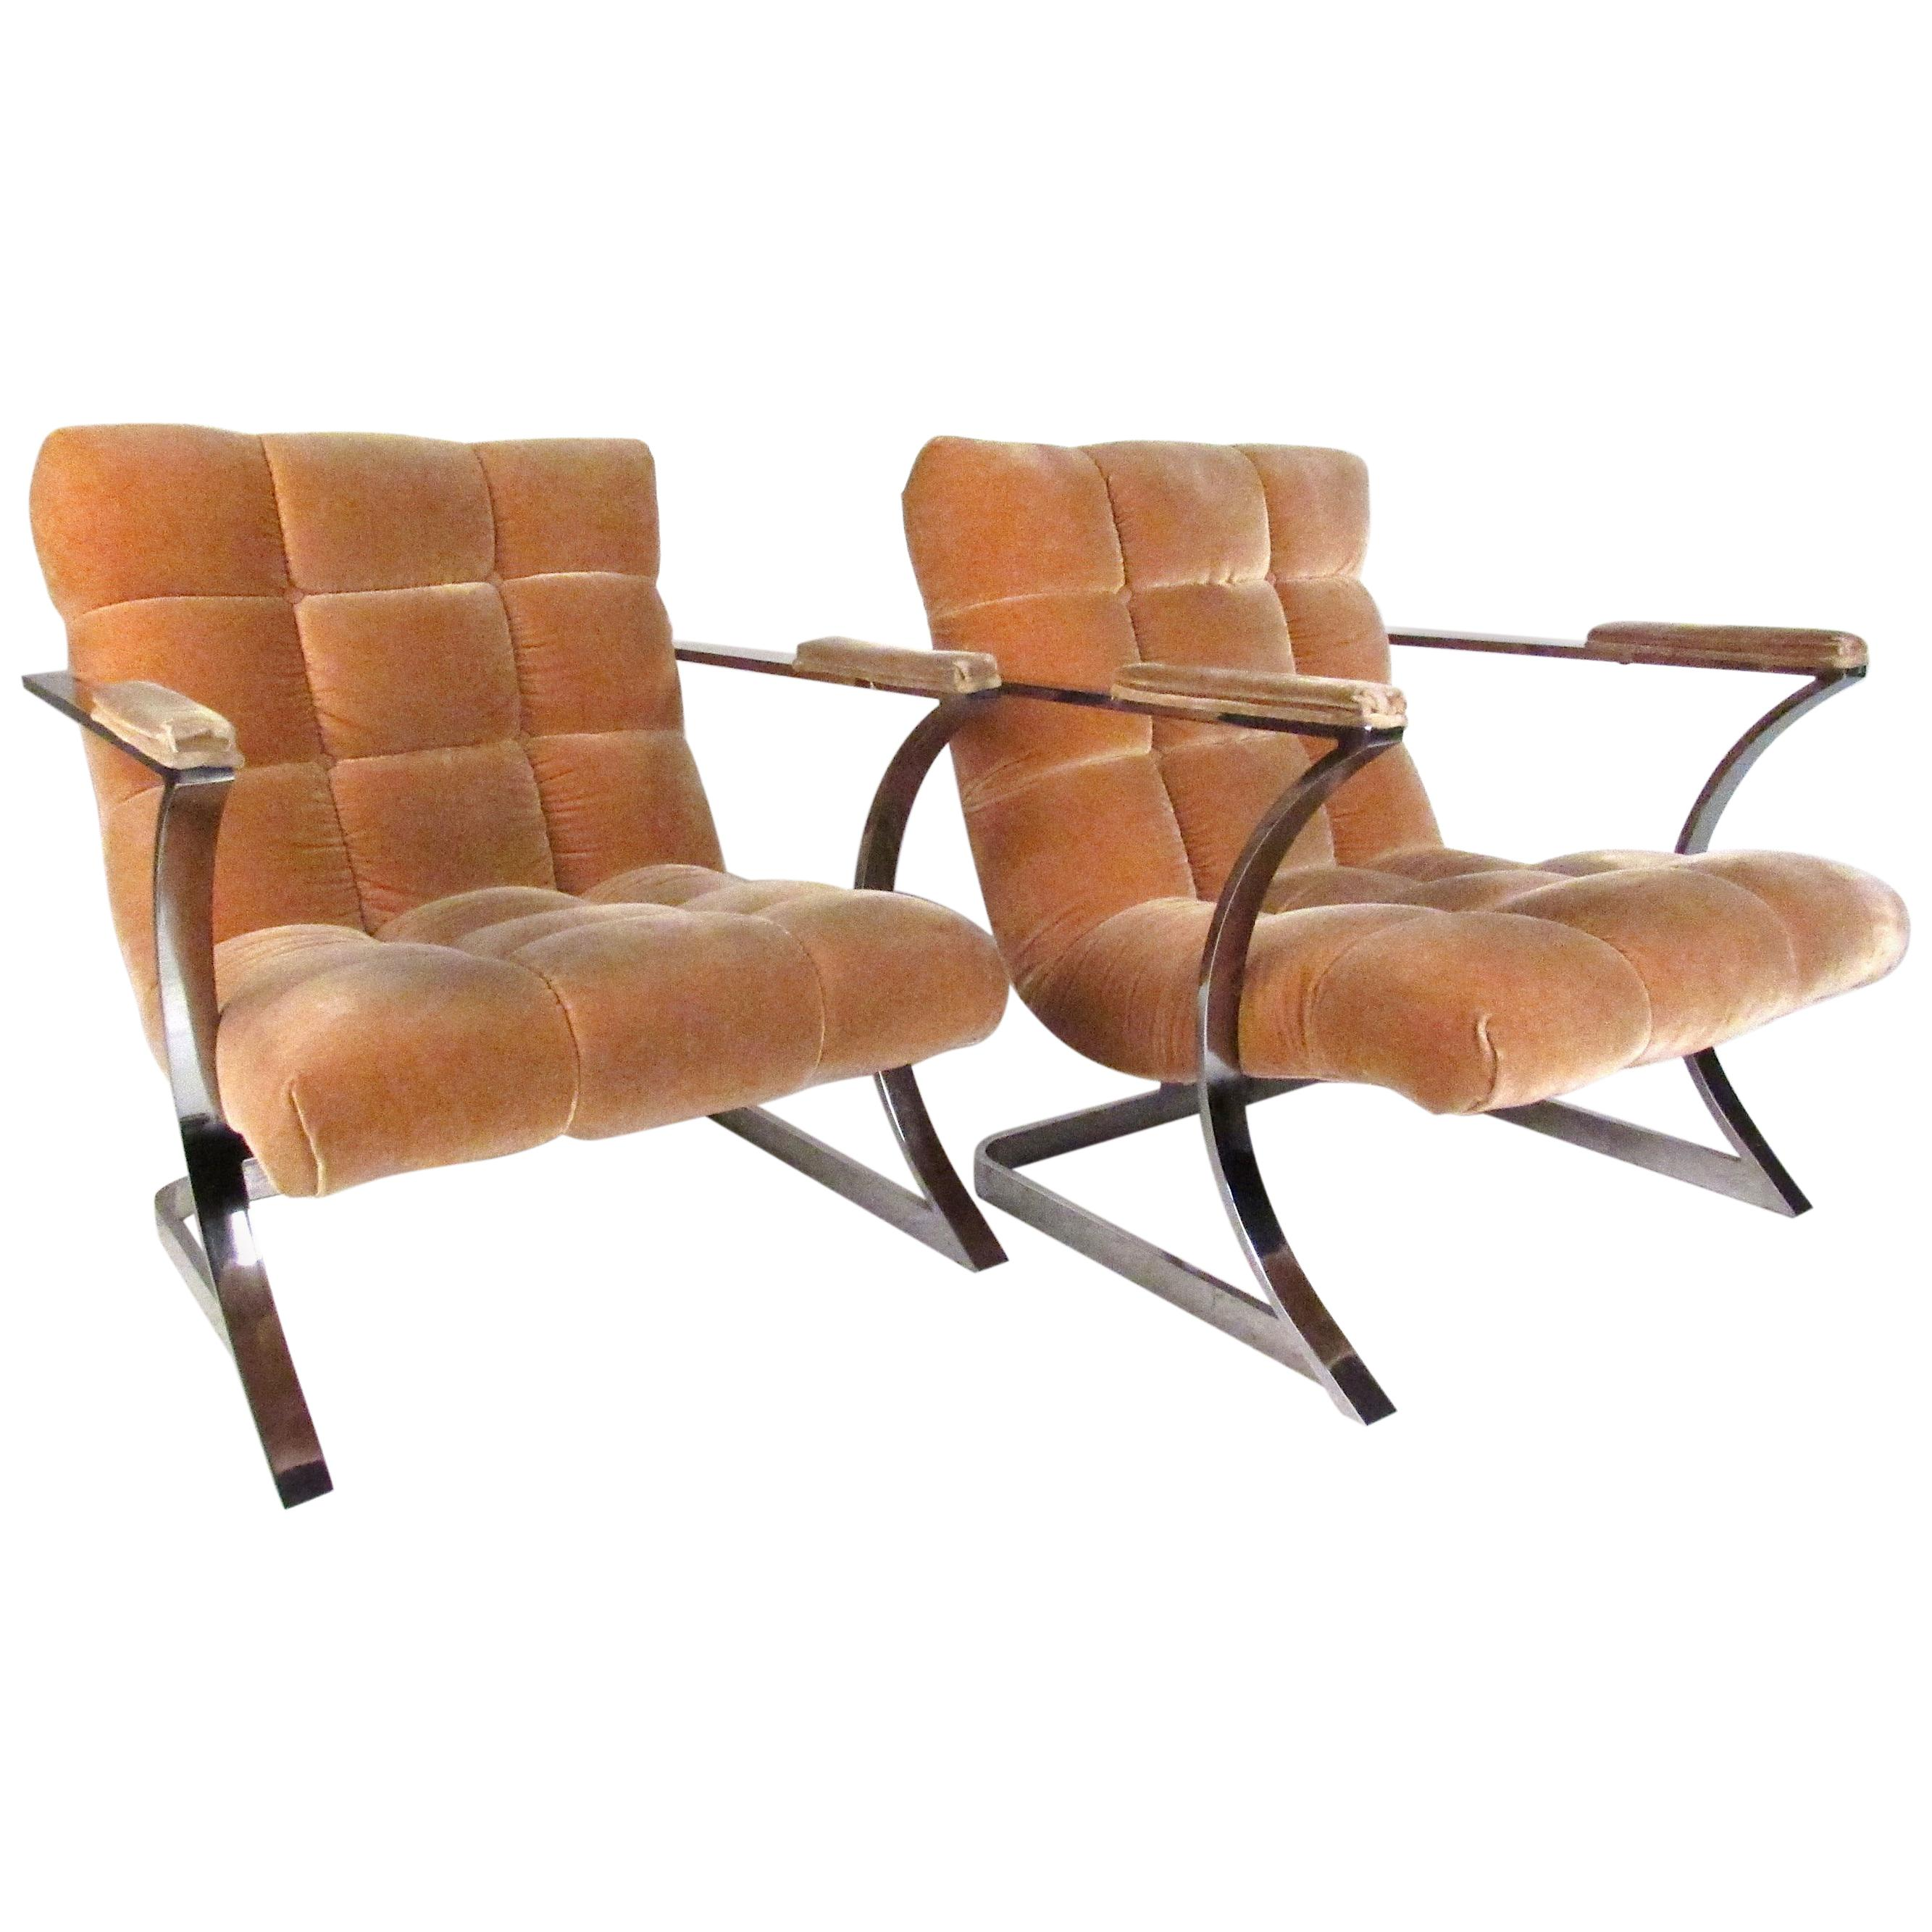 Vintage Lounge Chair By Carson S Of High Point For Sale At 1stdibs